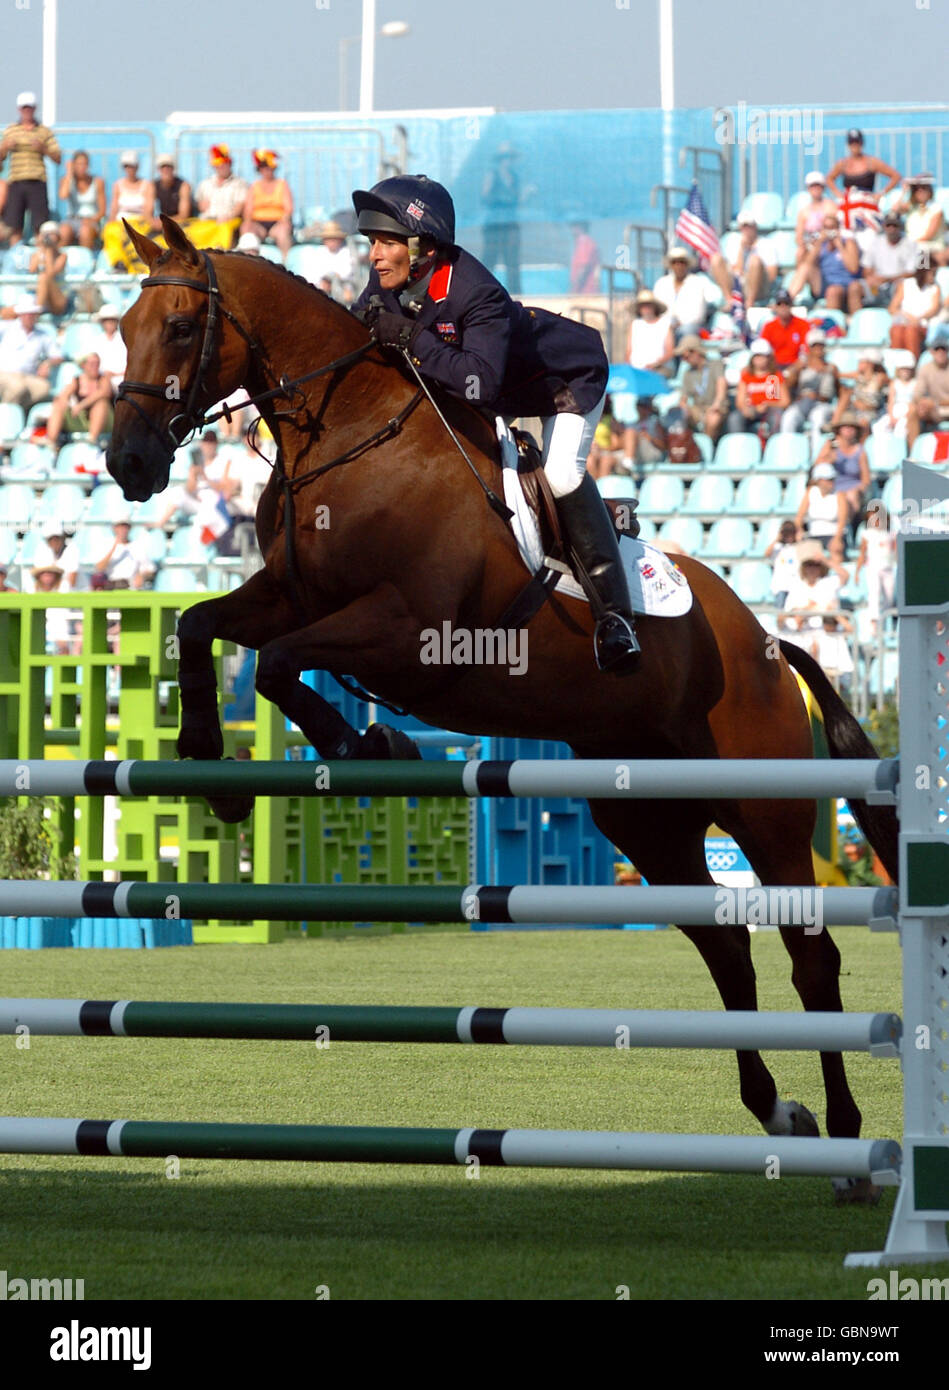 Equestrian - Athens Olympic Games 2004 - Three Day Eventing Show jumping - Stock Image